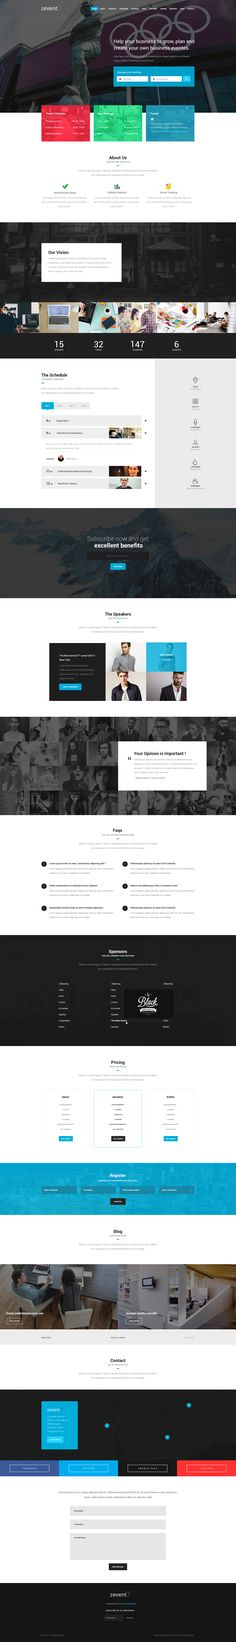 T Event  Event Conference  Meetup Psd Template  Psd Templates